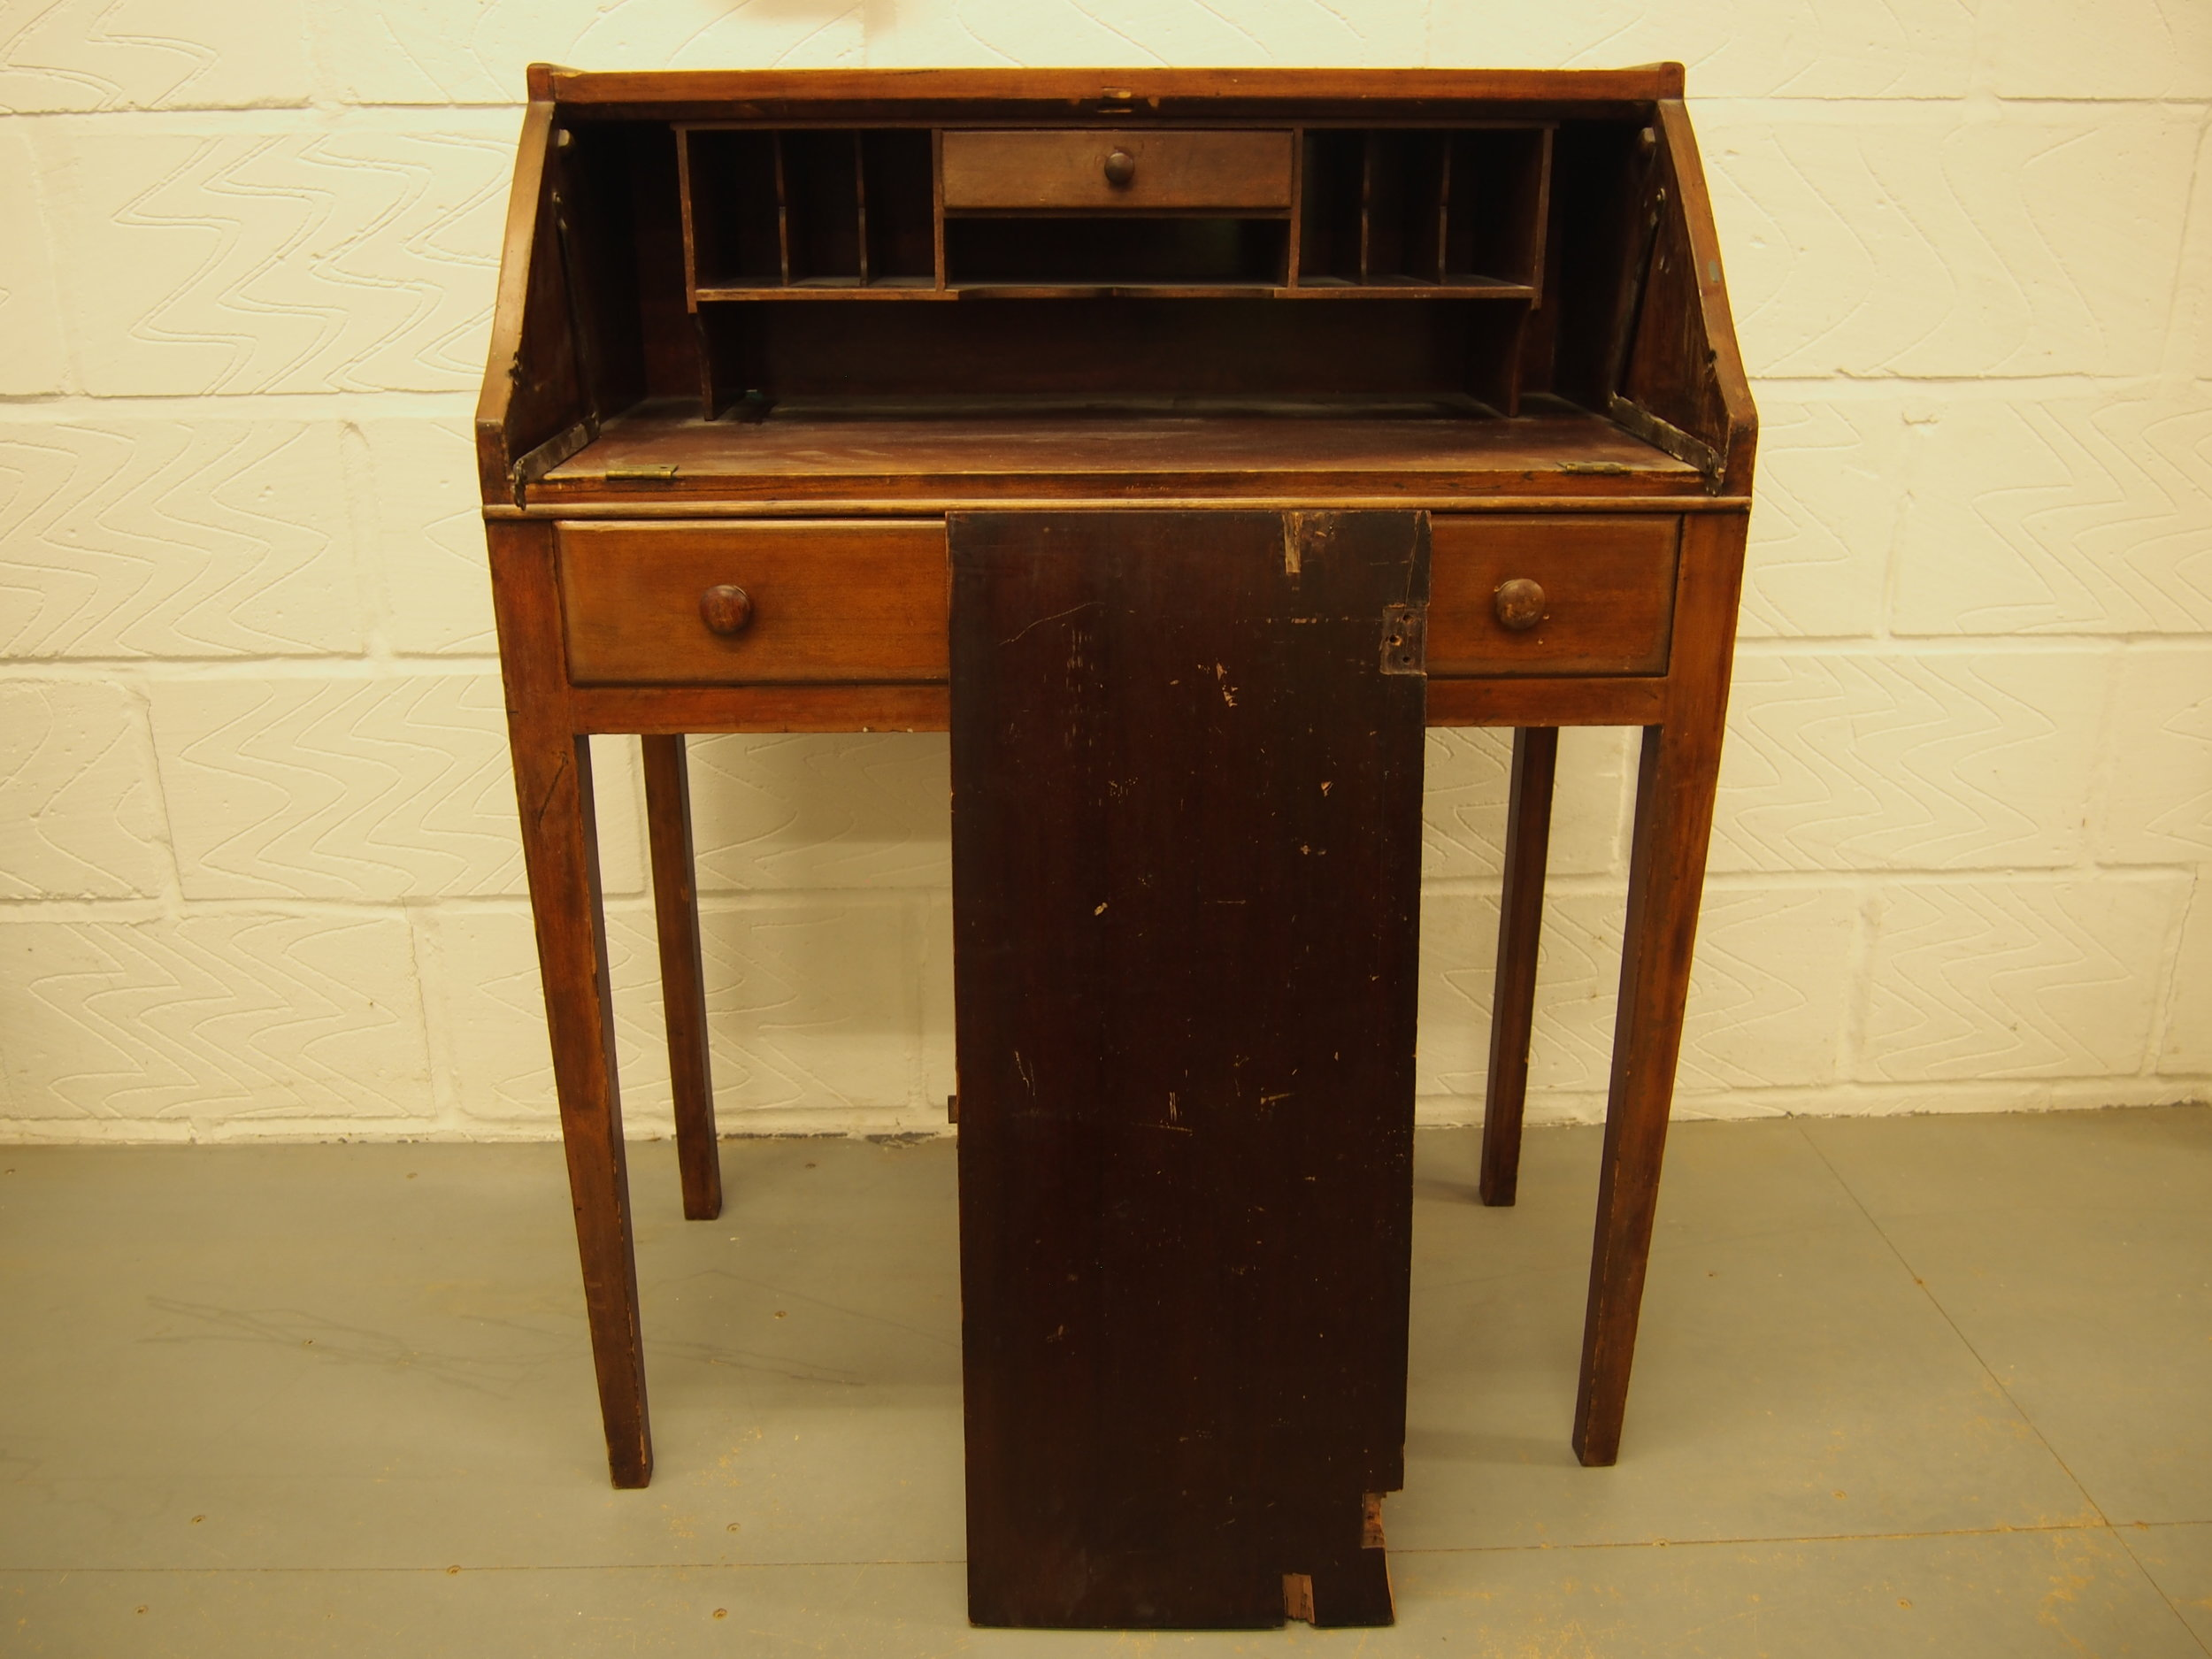 Before Restoration of Cherry Wood Edwardian Bureau   The original condition was scratched, pieces were broken and missing and the entire piece needed re finishing.